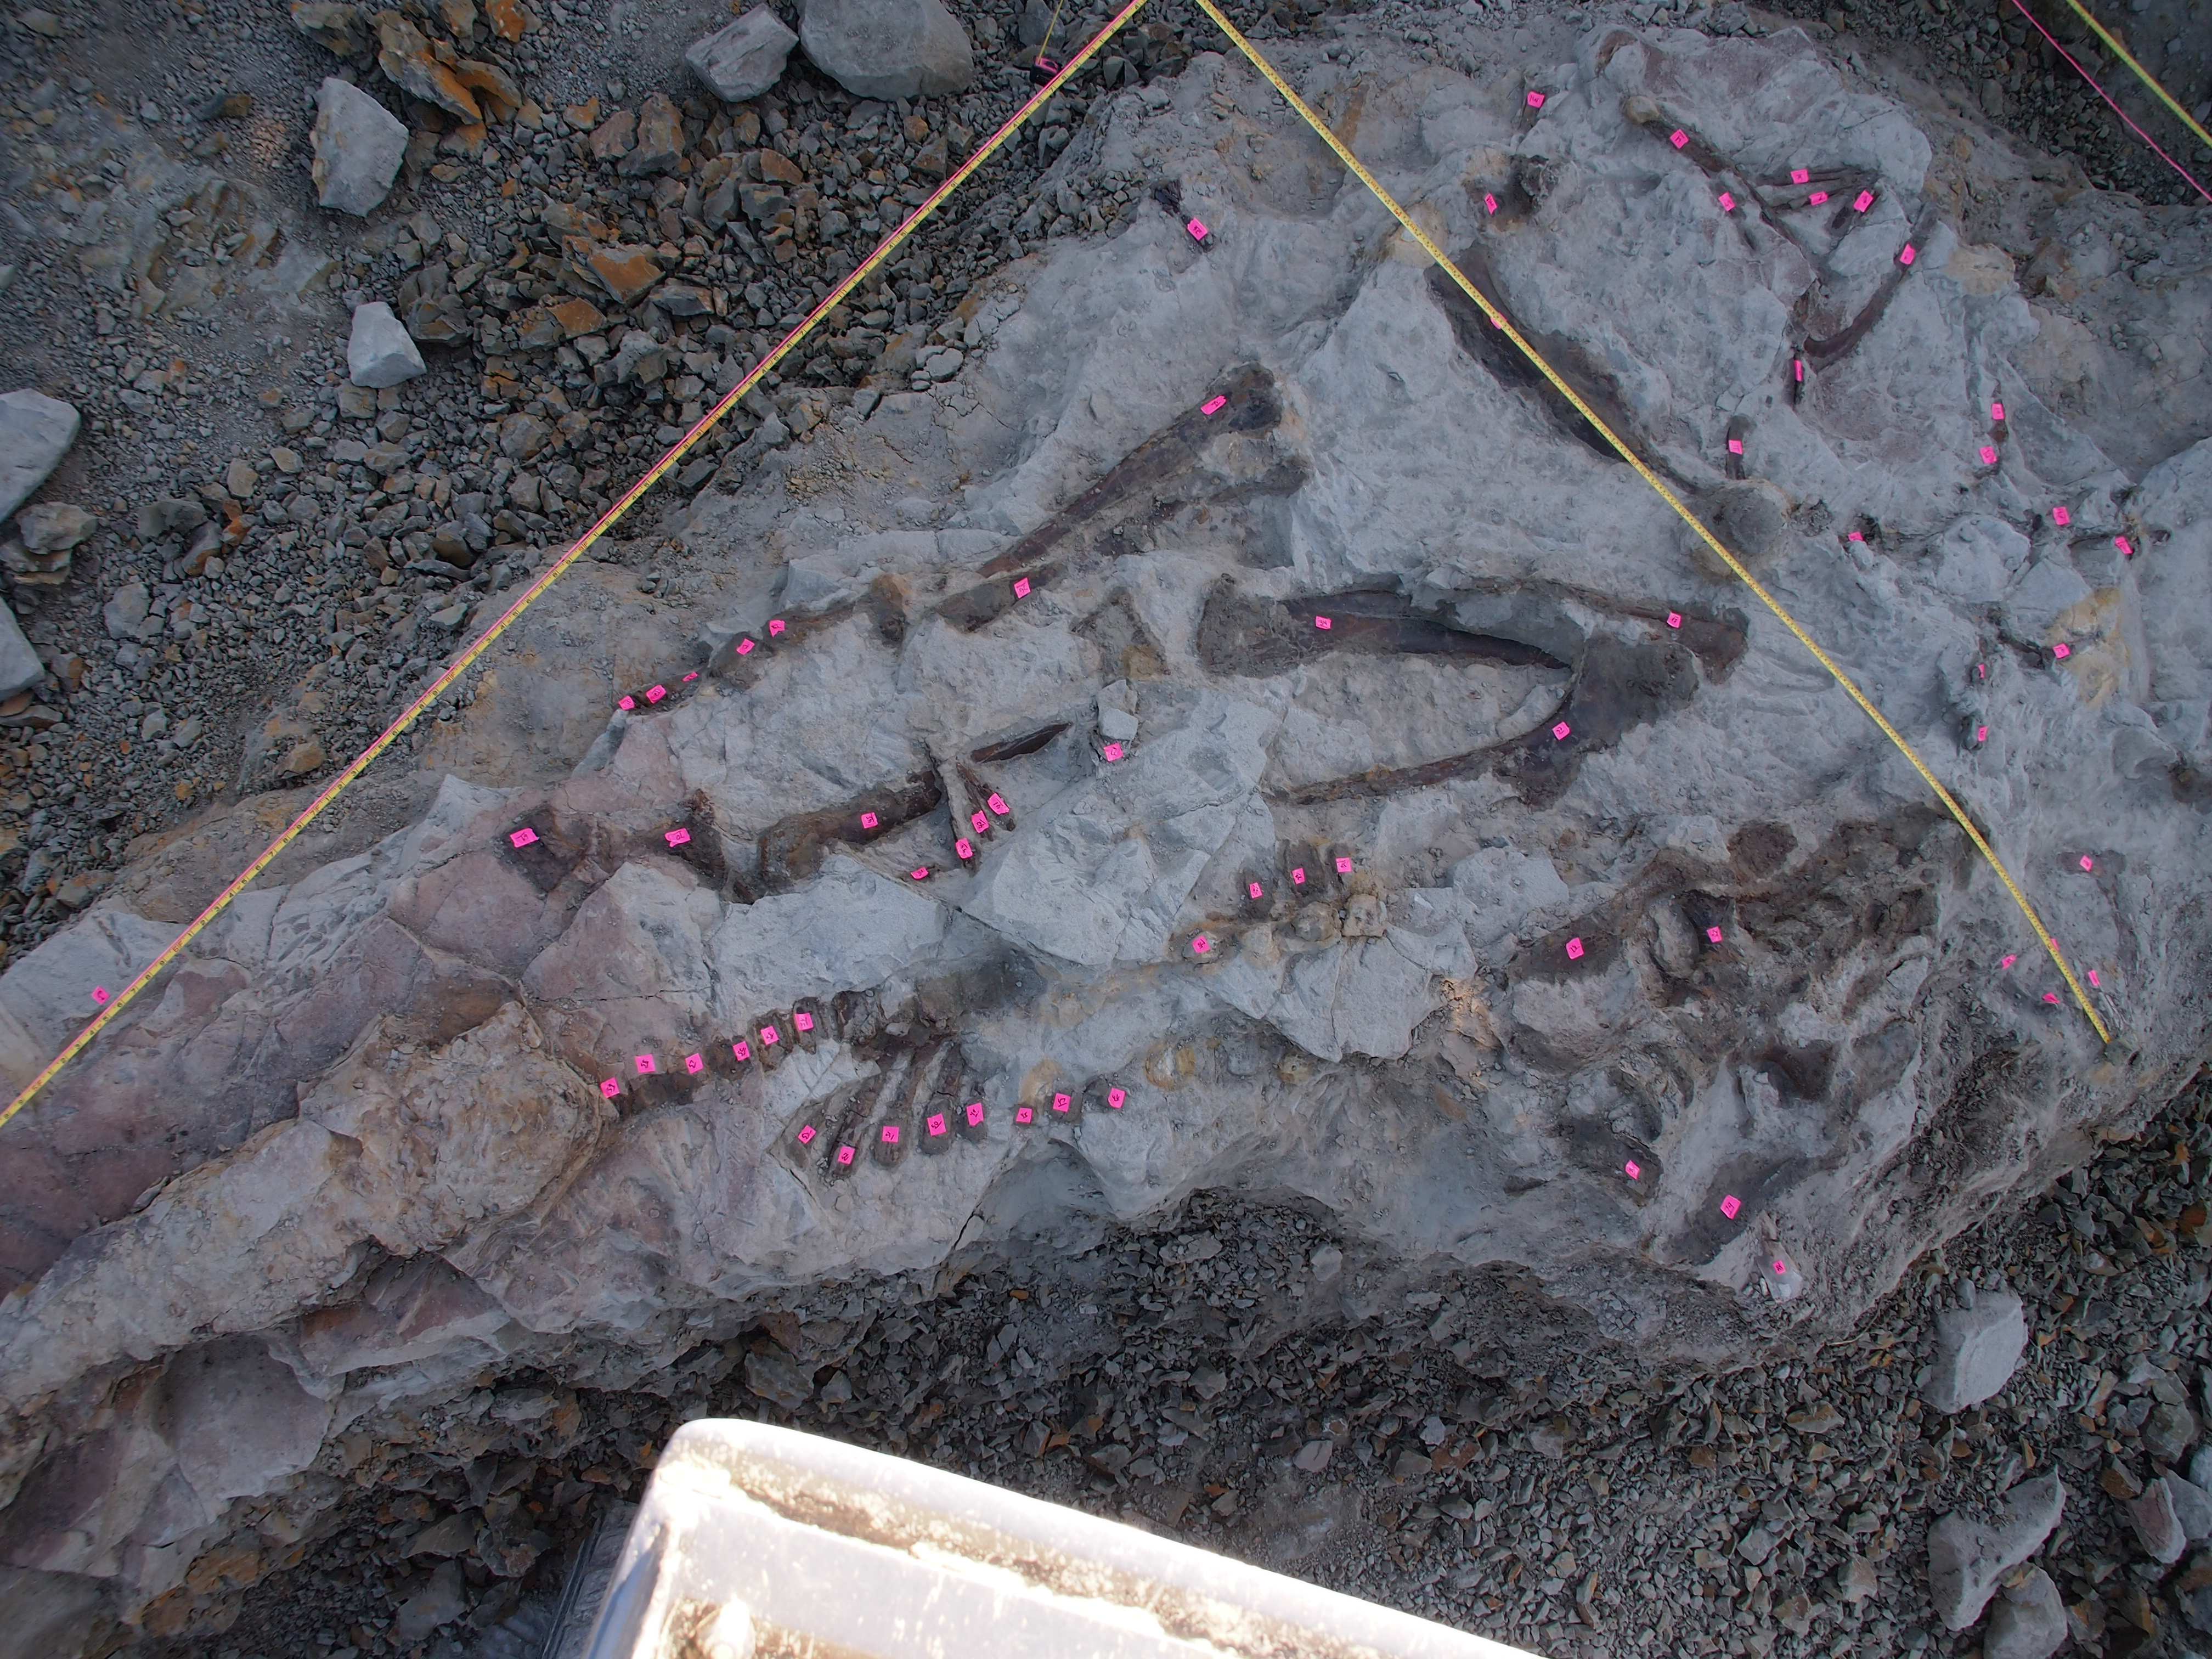 Hadrosaur skeleton discovered in 2018. Partially articulated with skin. Sub-adult edmontosaur from the Hell Creek Formation of Montana.